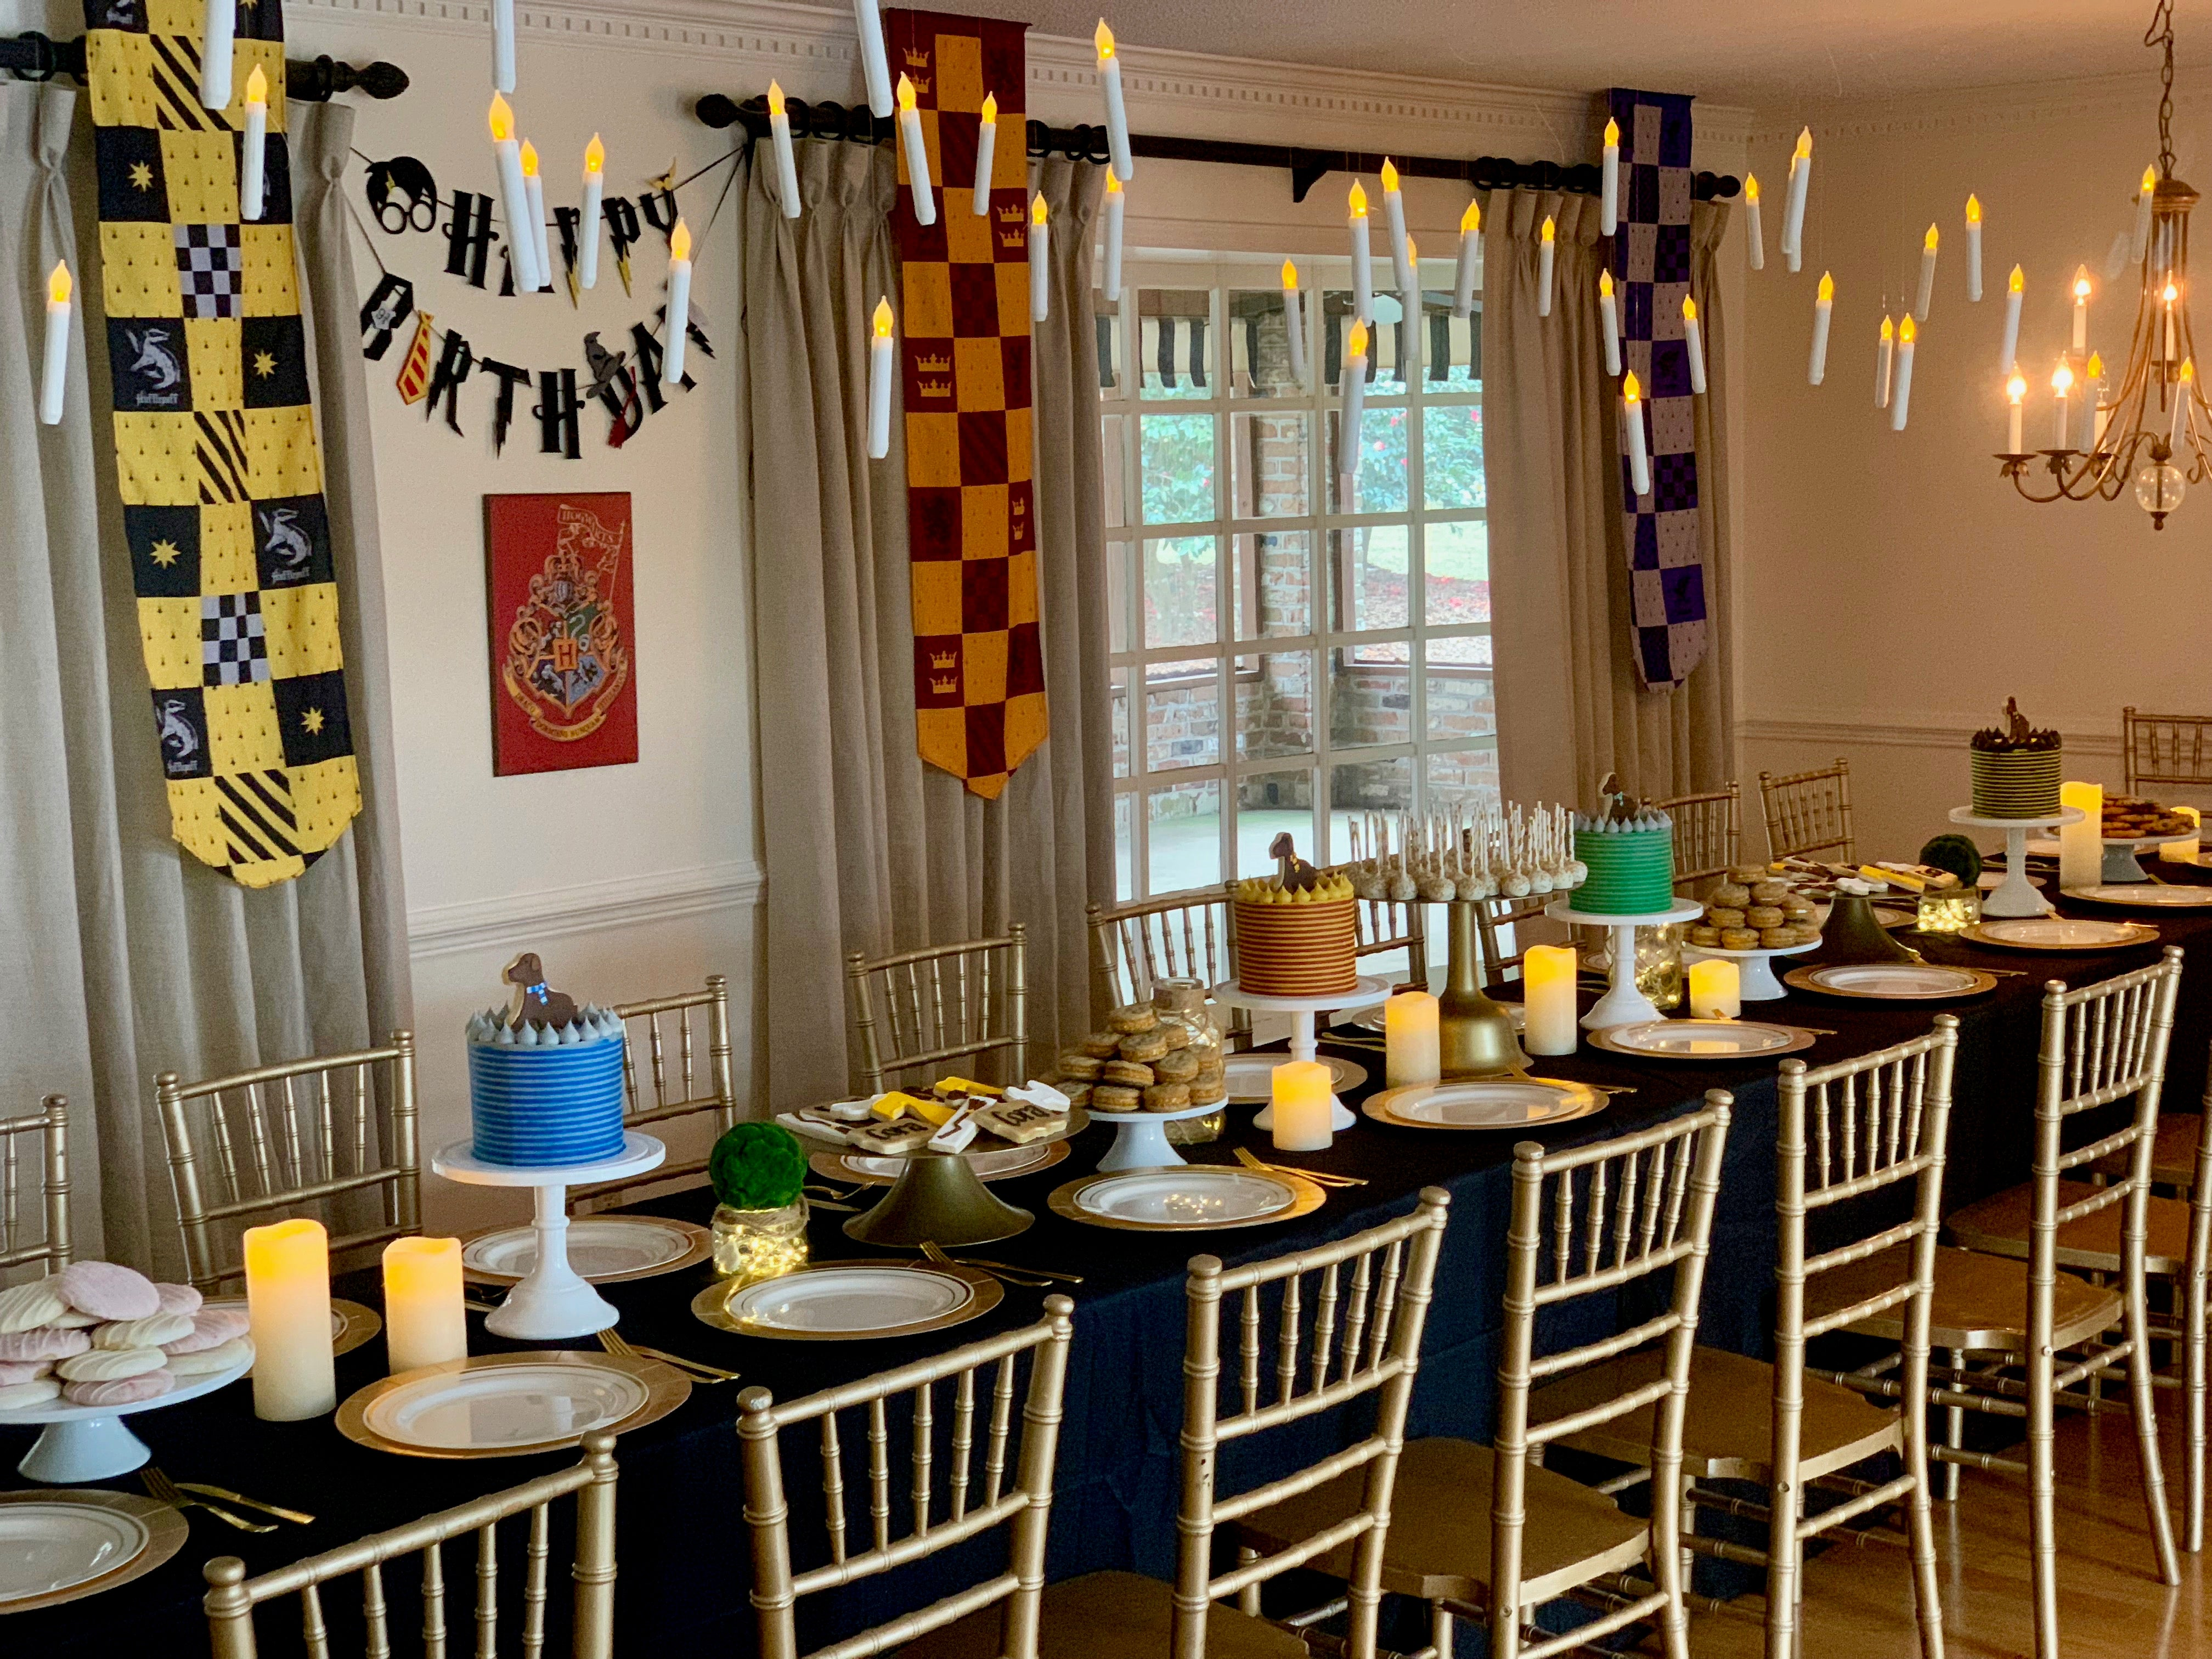 Harry Potter Birthday Party Table with Floating Candles